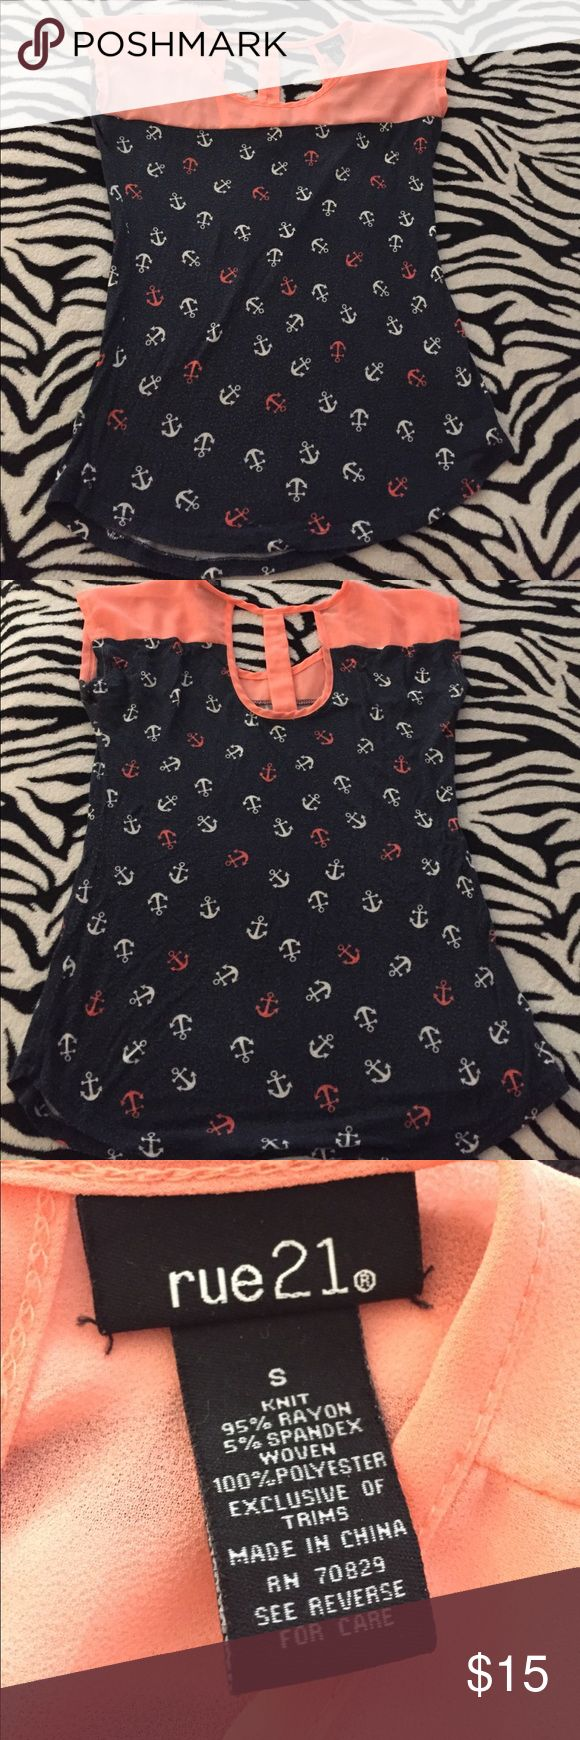 Anchor Shirt Super cute anchor shirt! Only worn twice! Soft and comfortable. Rue21 Tops Tees - Short Sleeve